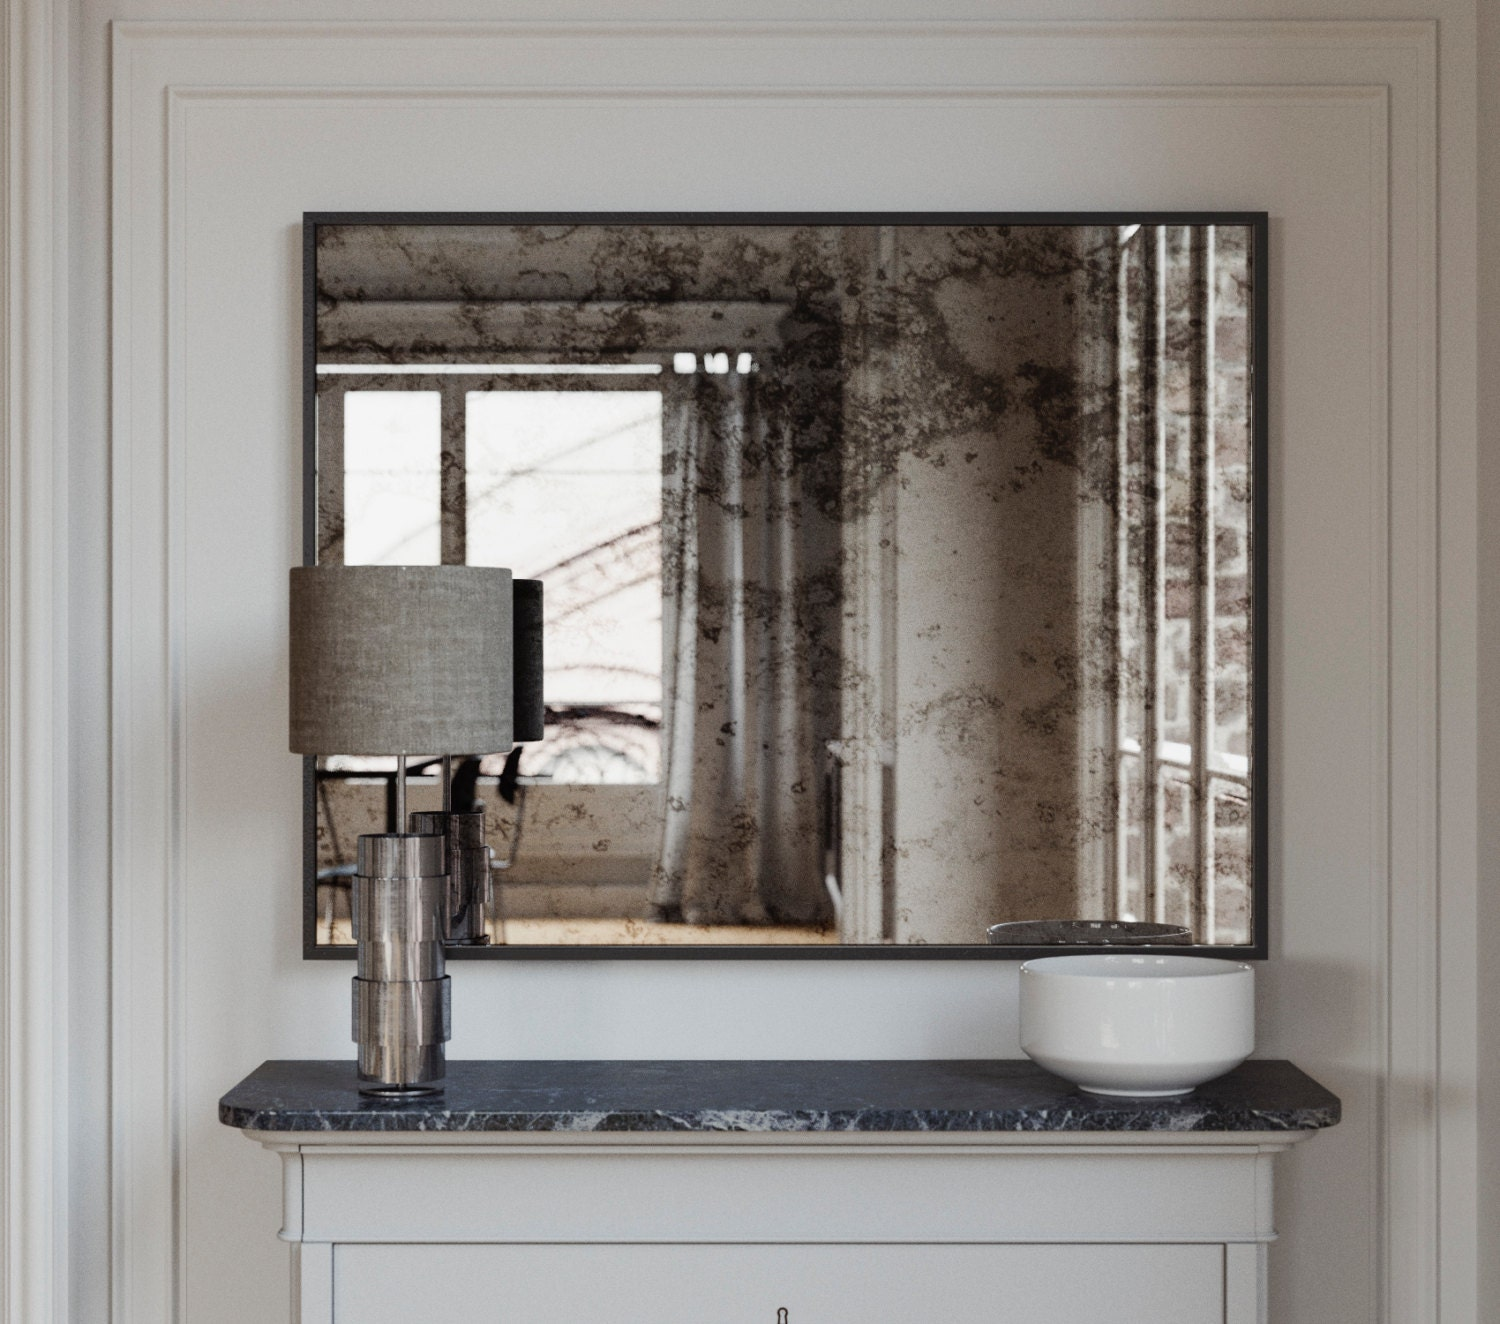 The Coveteur Antique Mirror Walls: Antique Framed Mirror. 1940s 50s And 60s Inspired Wall Mirror